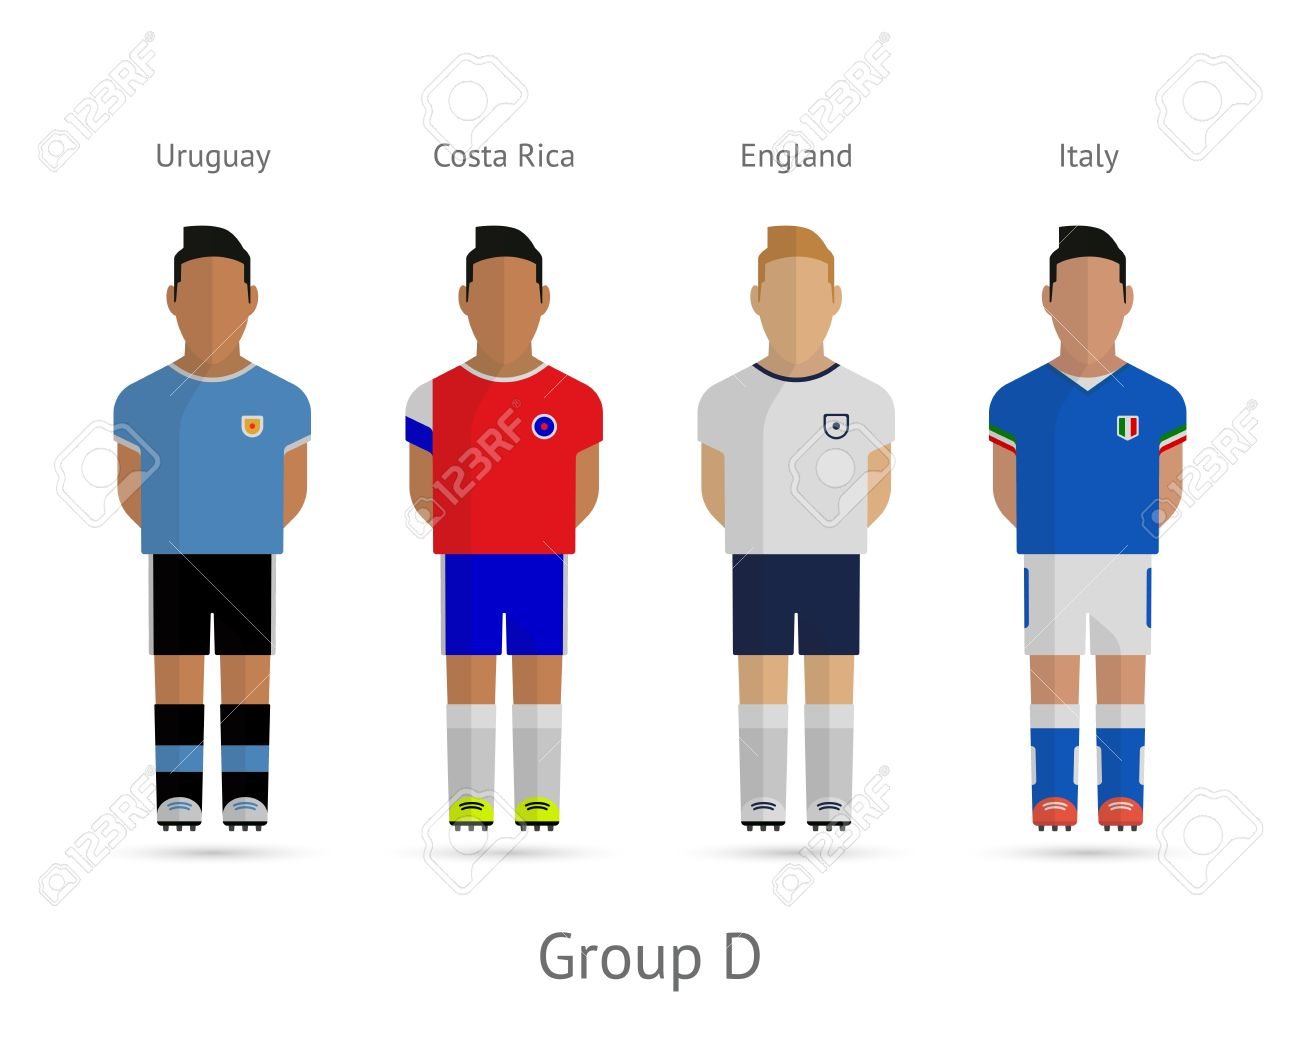 a6caafaee53 Soccer   Football Team Players. 2014 World Cup Group D - Uruguay ...